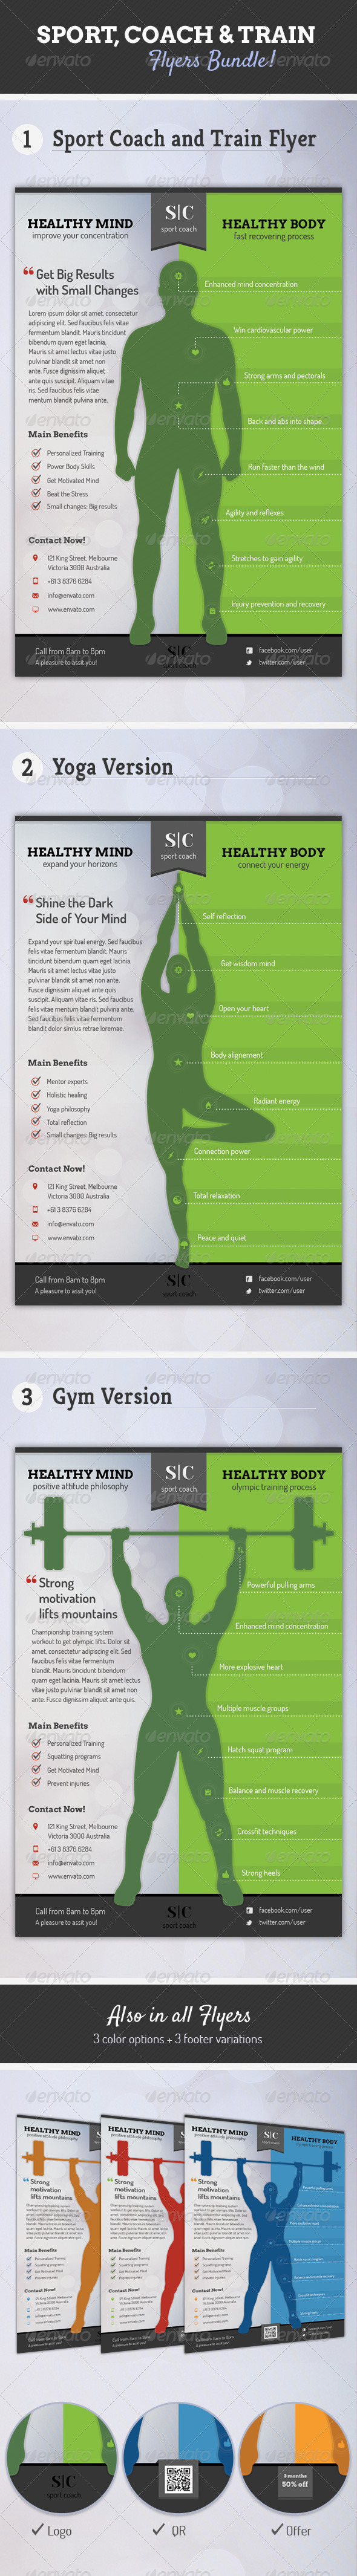 GraphicRiver Sport Coach and Train Flyers Bundle 6433104